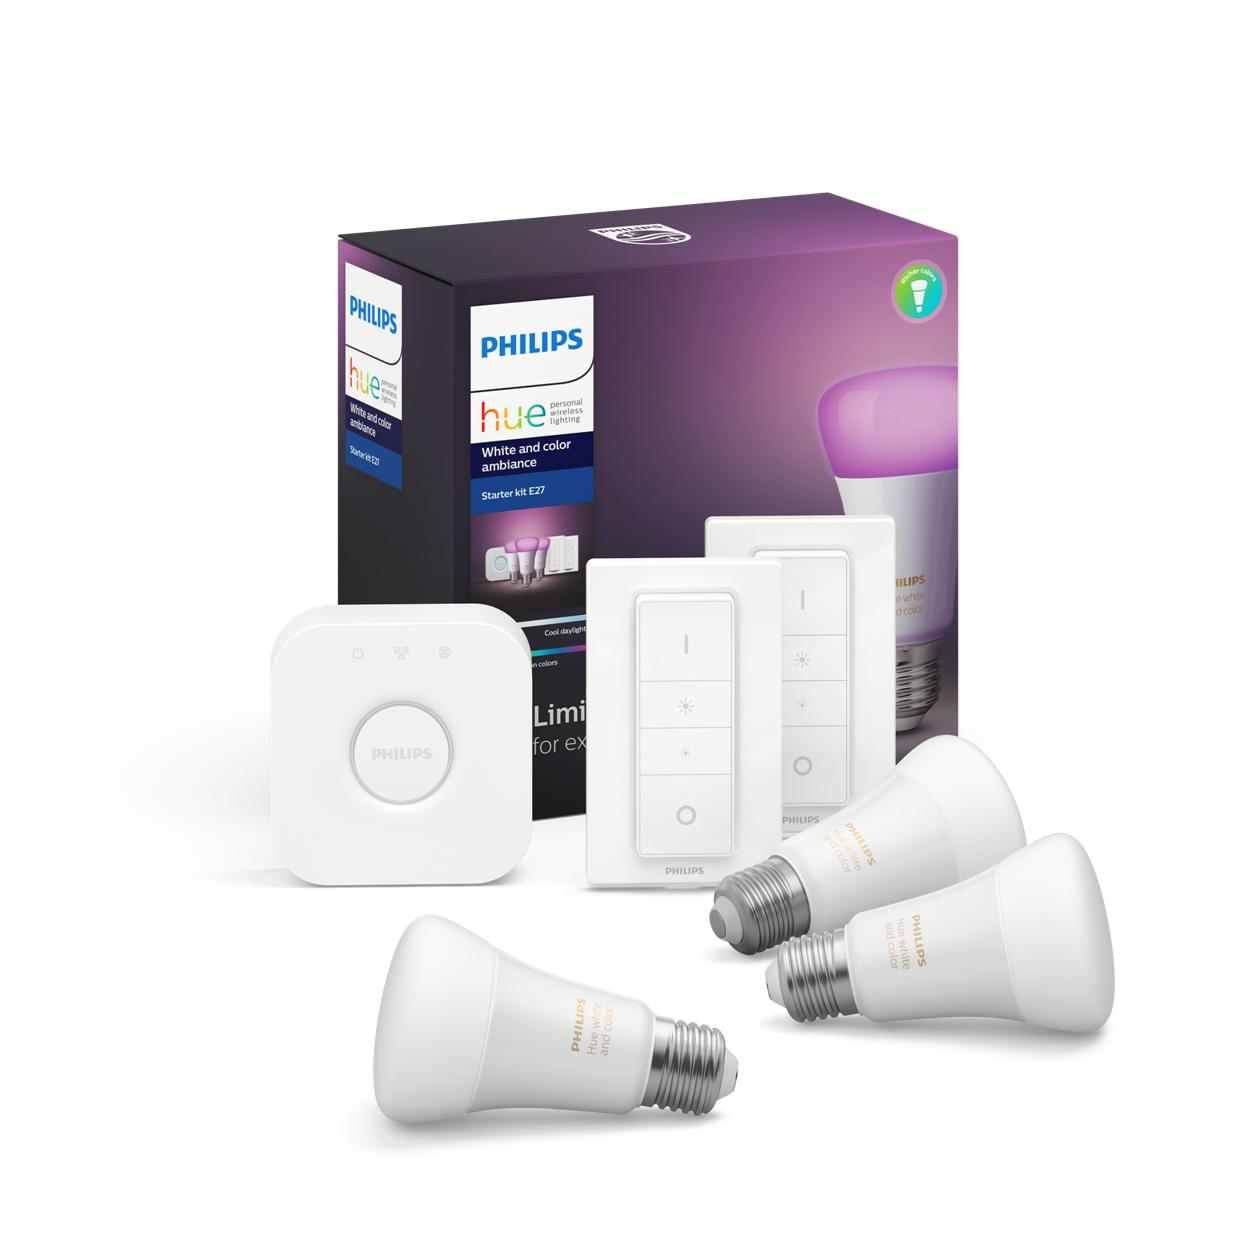 Philips Hue 3xžárovka LED E27 9W 806lm 2200-6500K 16mil.barev+Bridge+2xDimmerSwitch 8718699696917